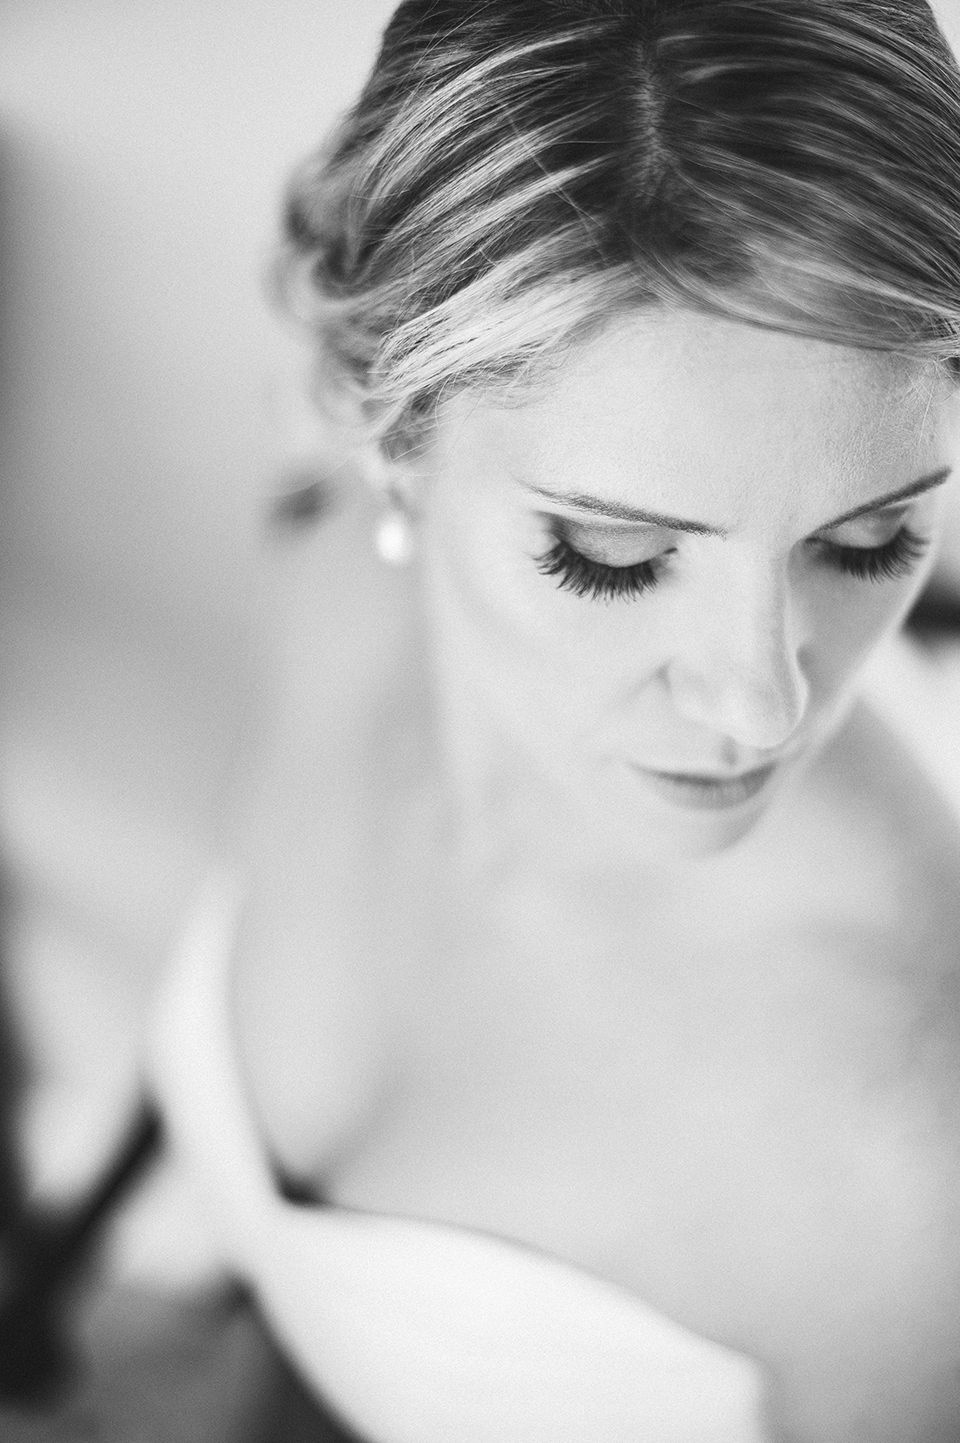 RyanParker_Photographer_Wedding_Portfolio_DSC_1341.jpg